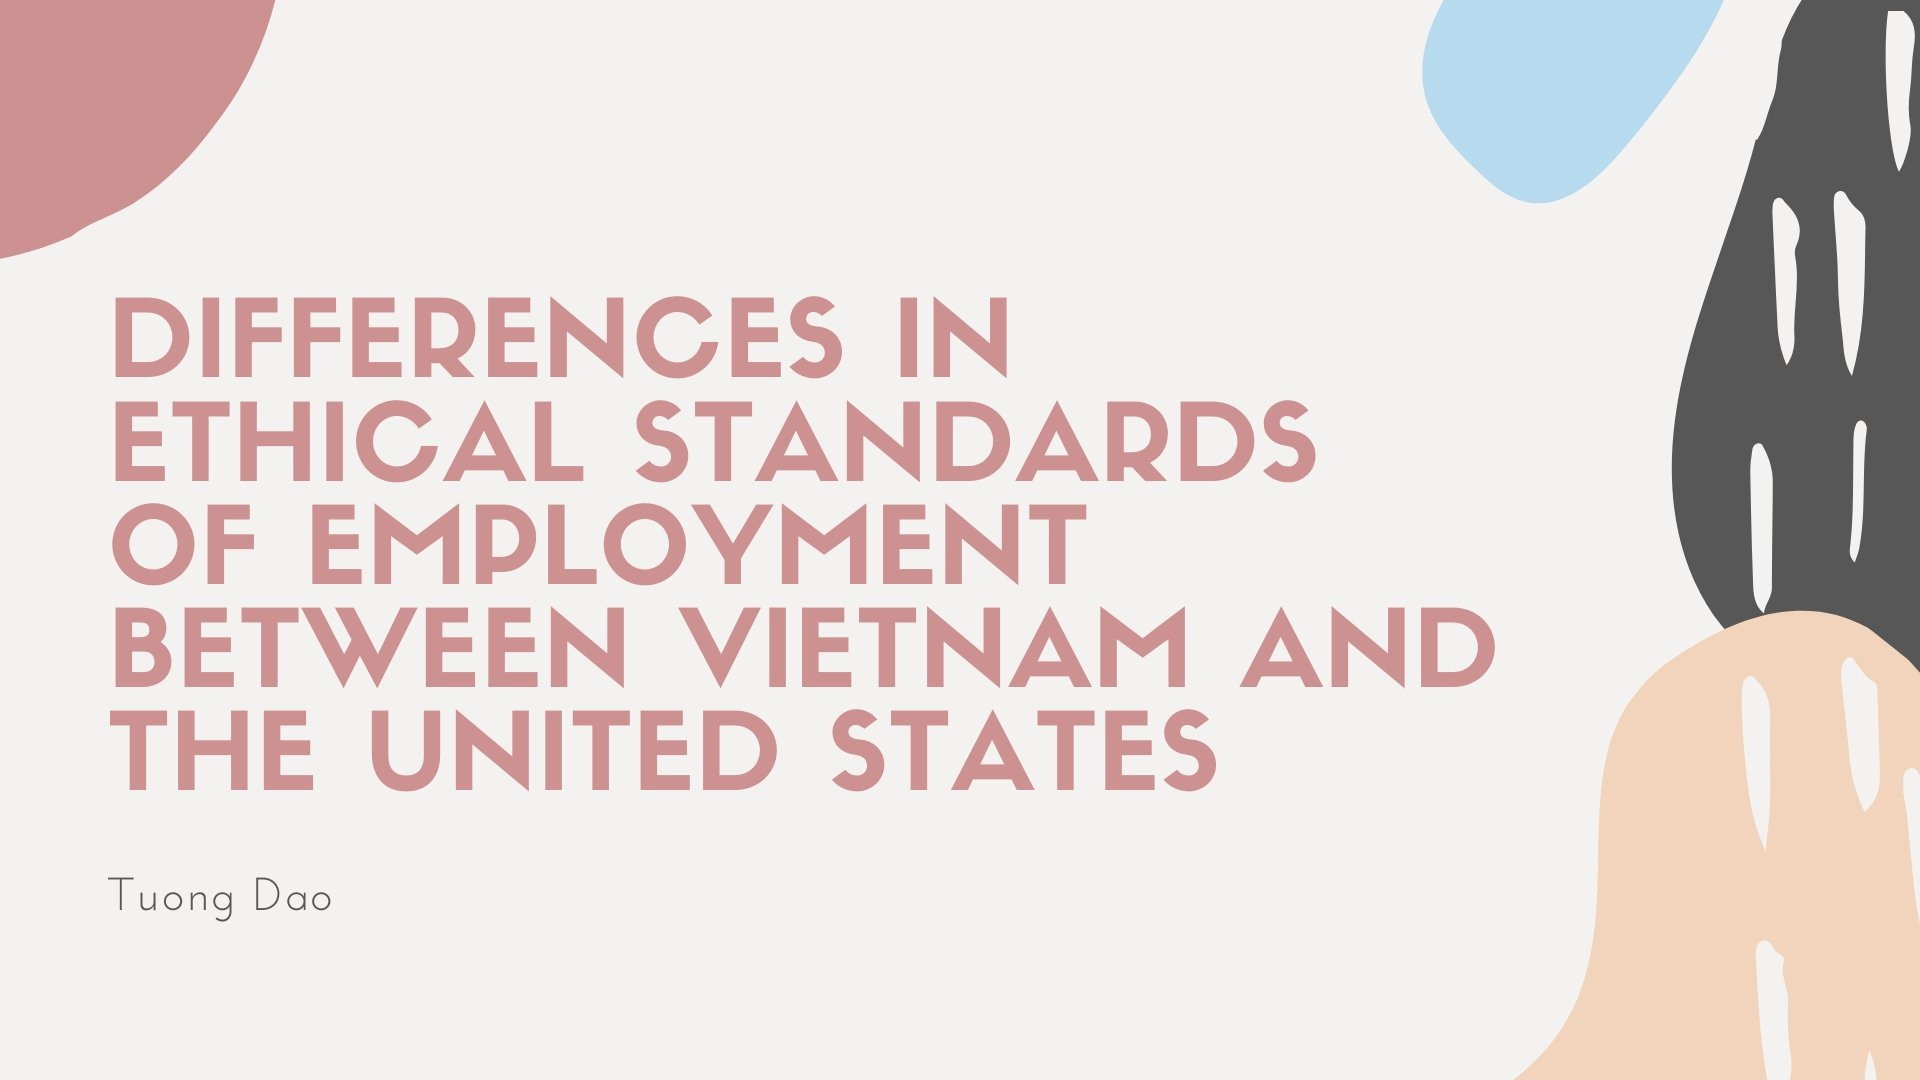 Differences in Ethical Standards of Employment Between Vietnam and the United States